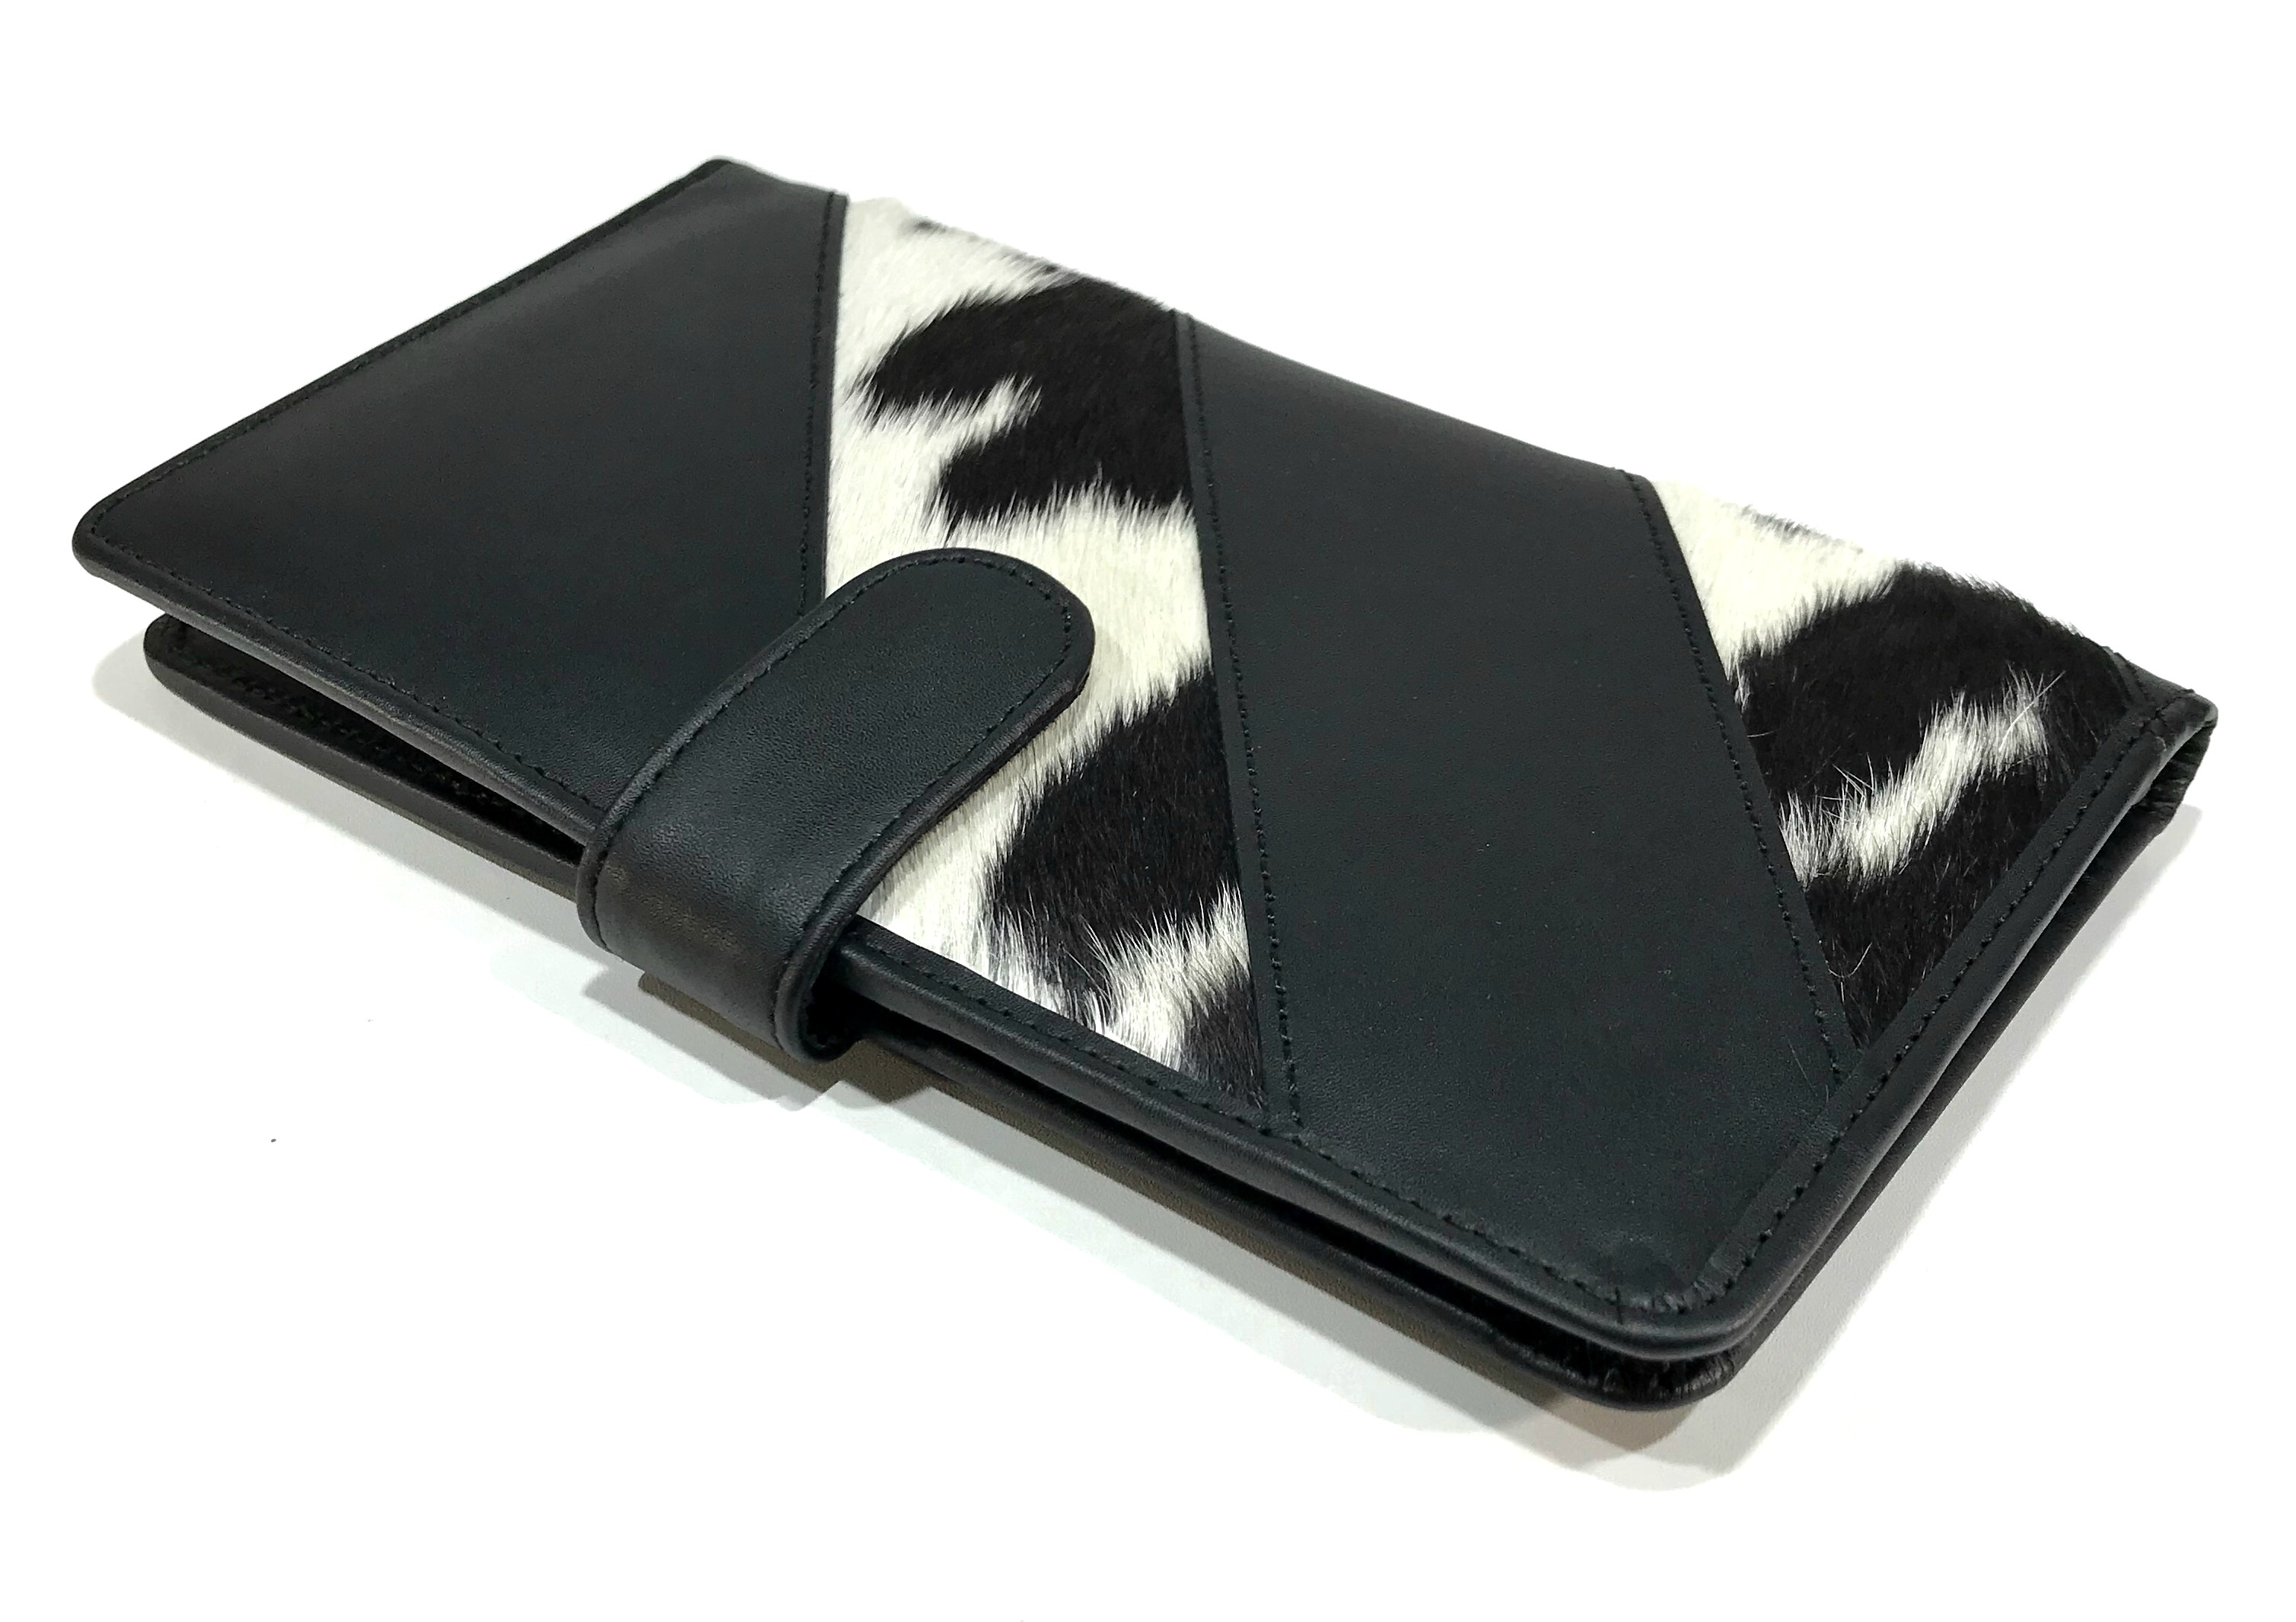 Travel in style with our gorgeous new Gabriel travel wallet